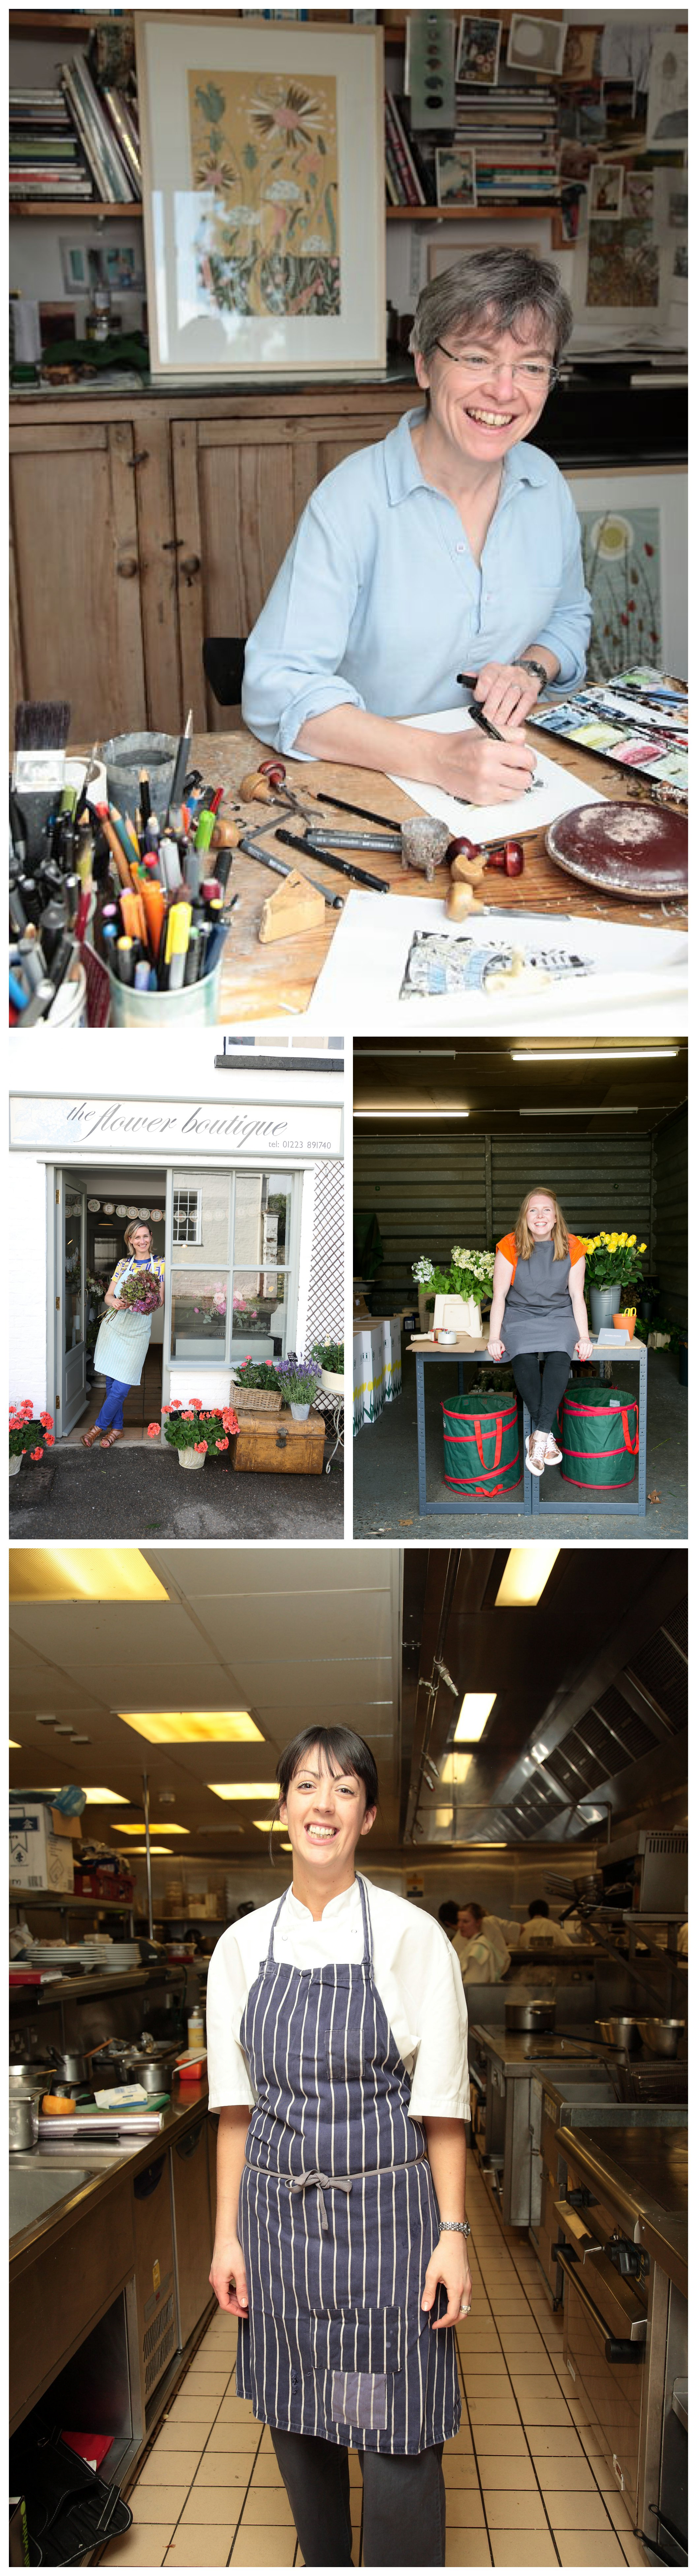 lifestyle portrait photography of creative small businesses in Camrbidge